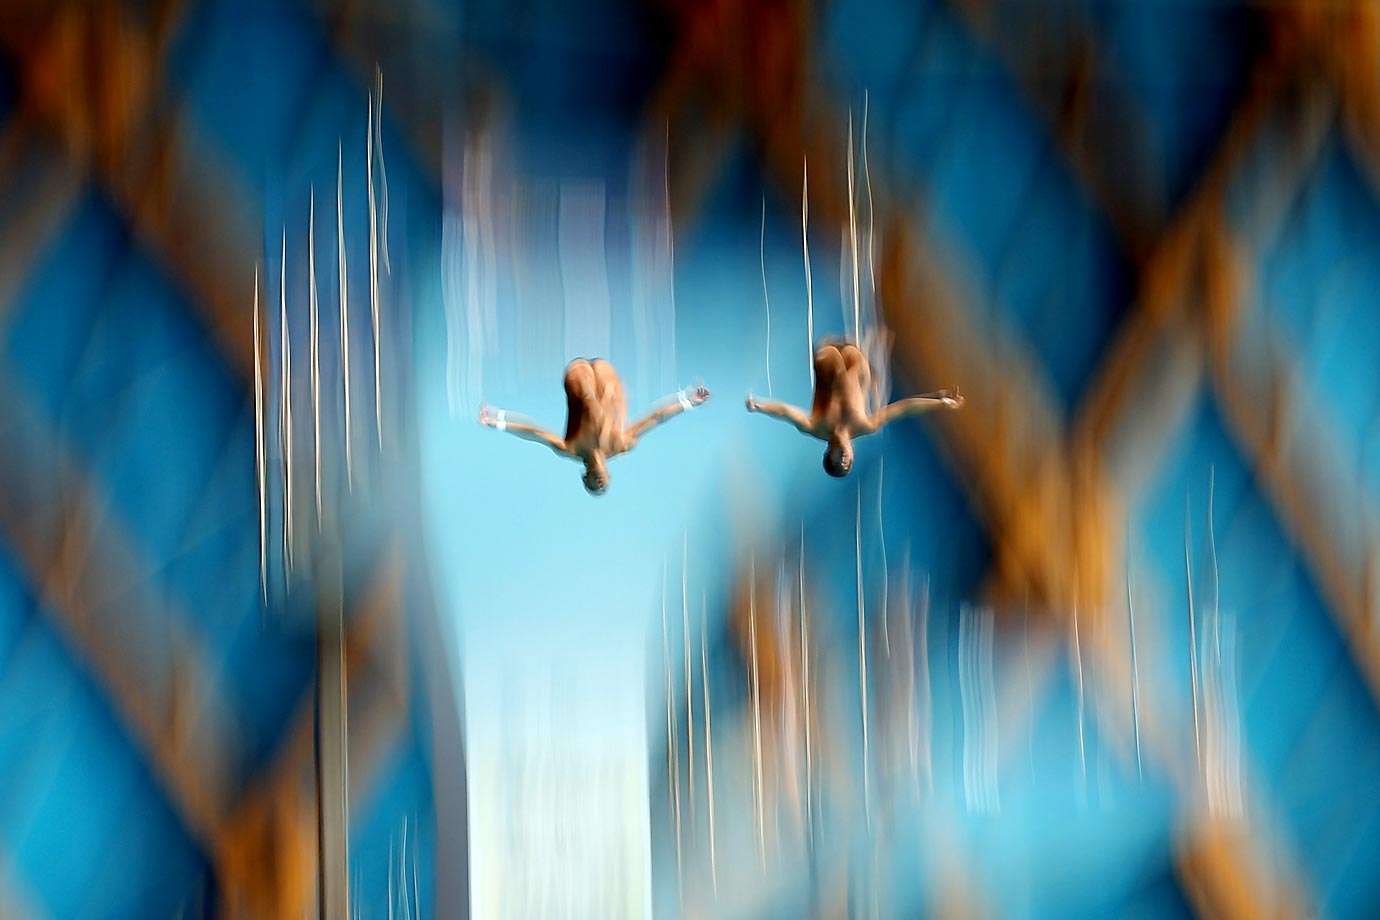 Victor Hugo Ortega Serna and Juan Guillermo Rios Lopera of Colombia compete in the 10m Platform Synchronised Diving Final at the 16th FINA World Championships in Kazan, Russia.